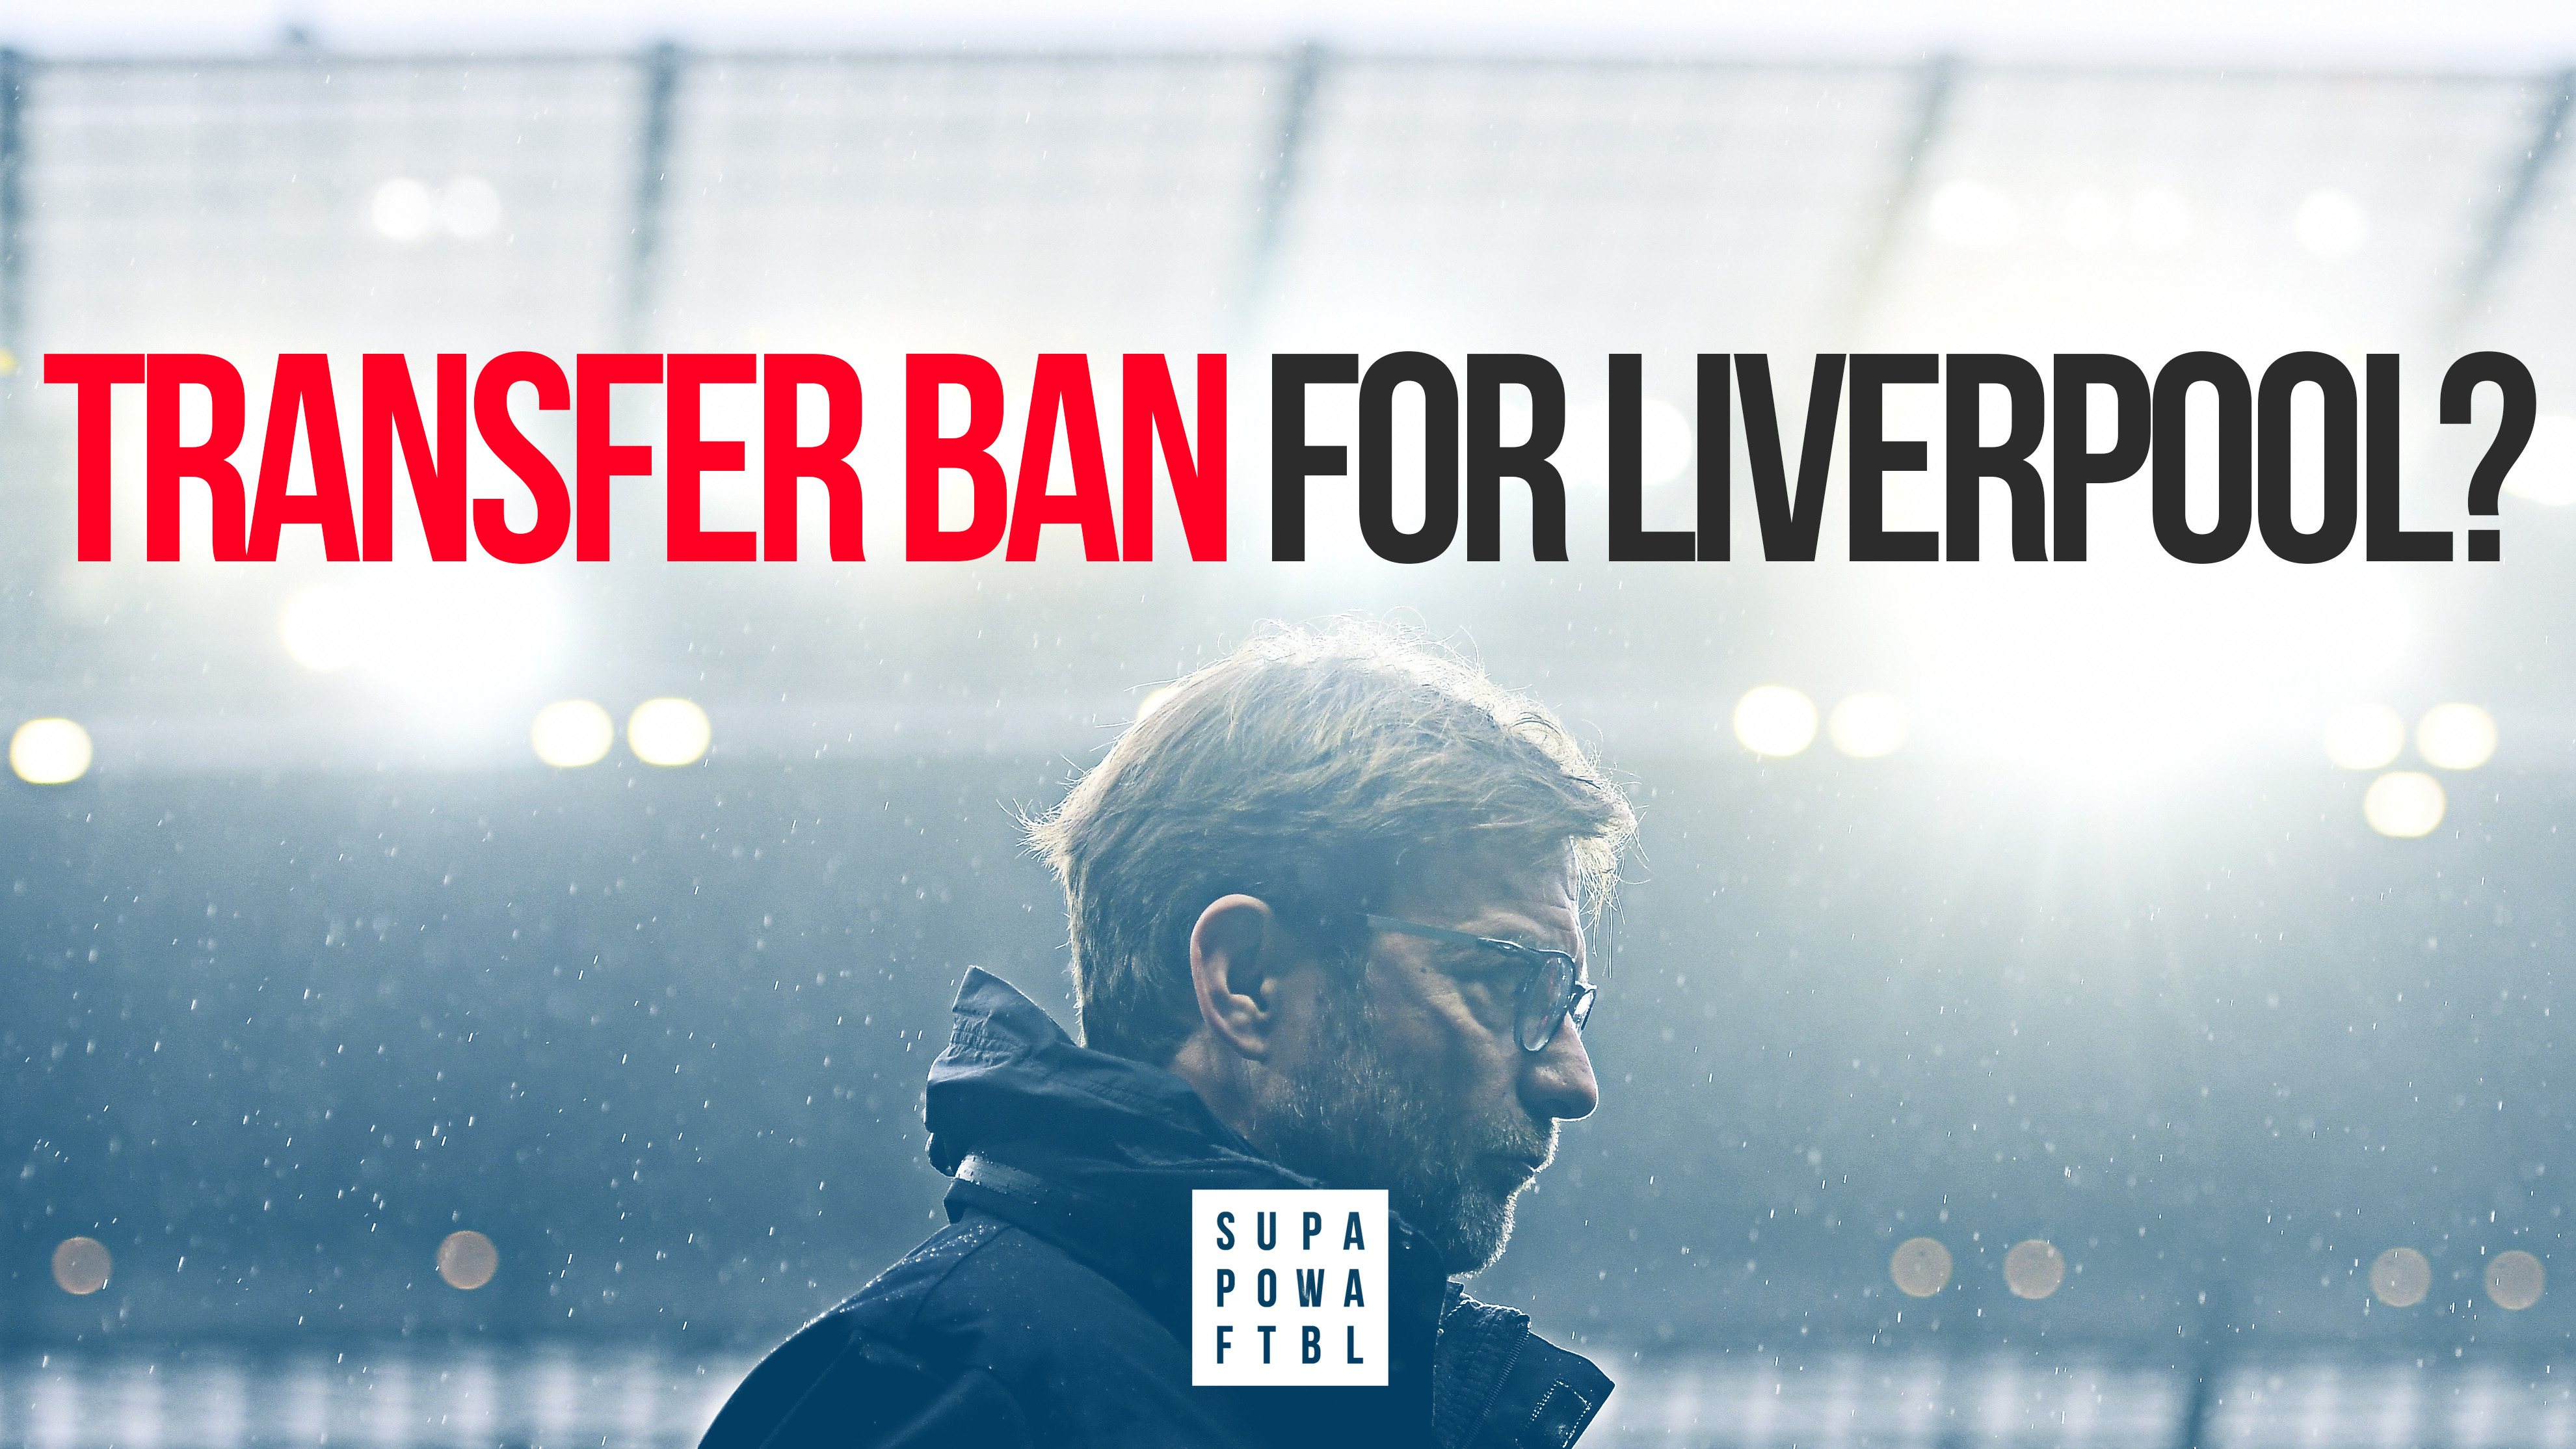 Liverpool likely to be hit with a TRANSFER BAN!